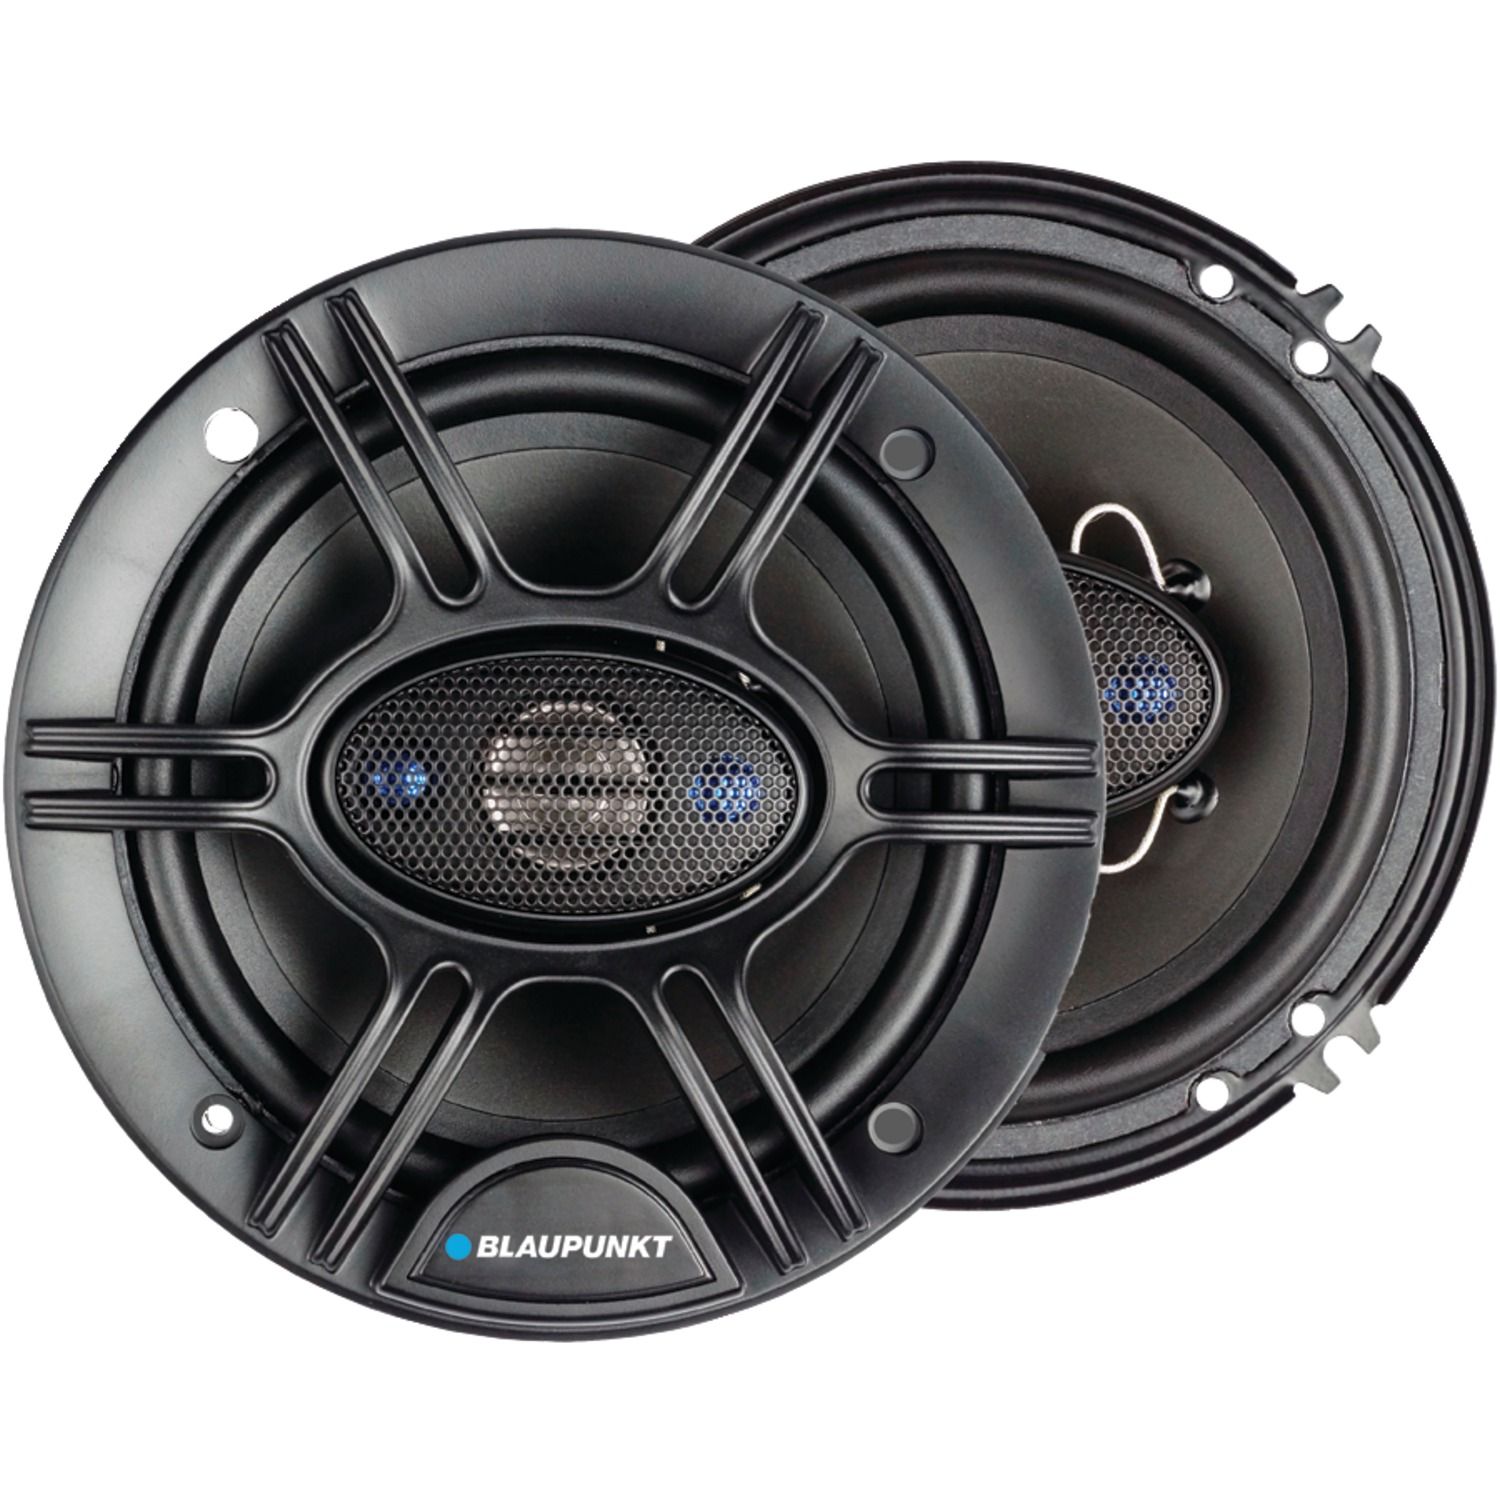 Blaupunkt Four-Way Coaxial Speakers